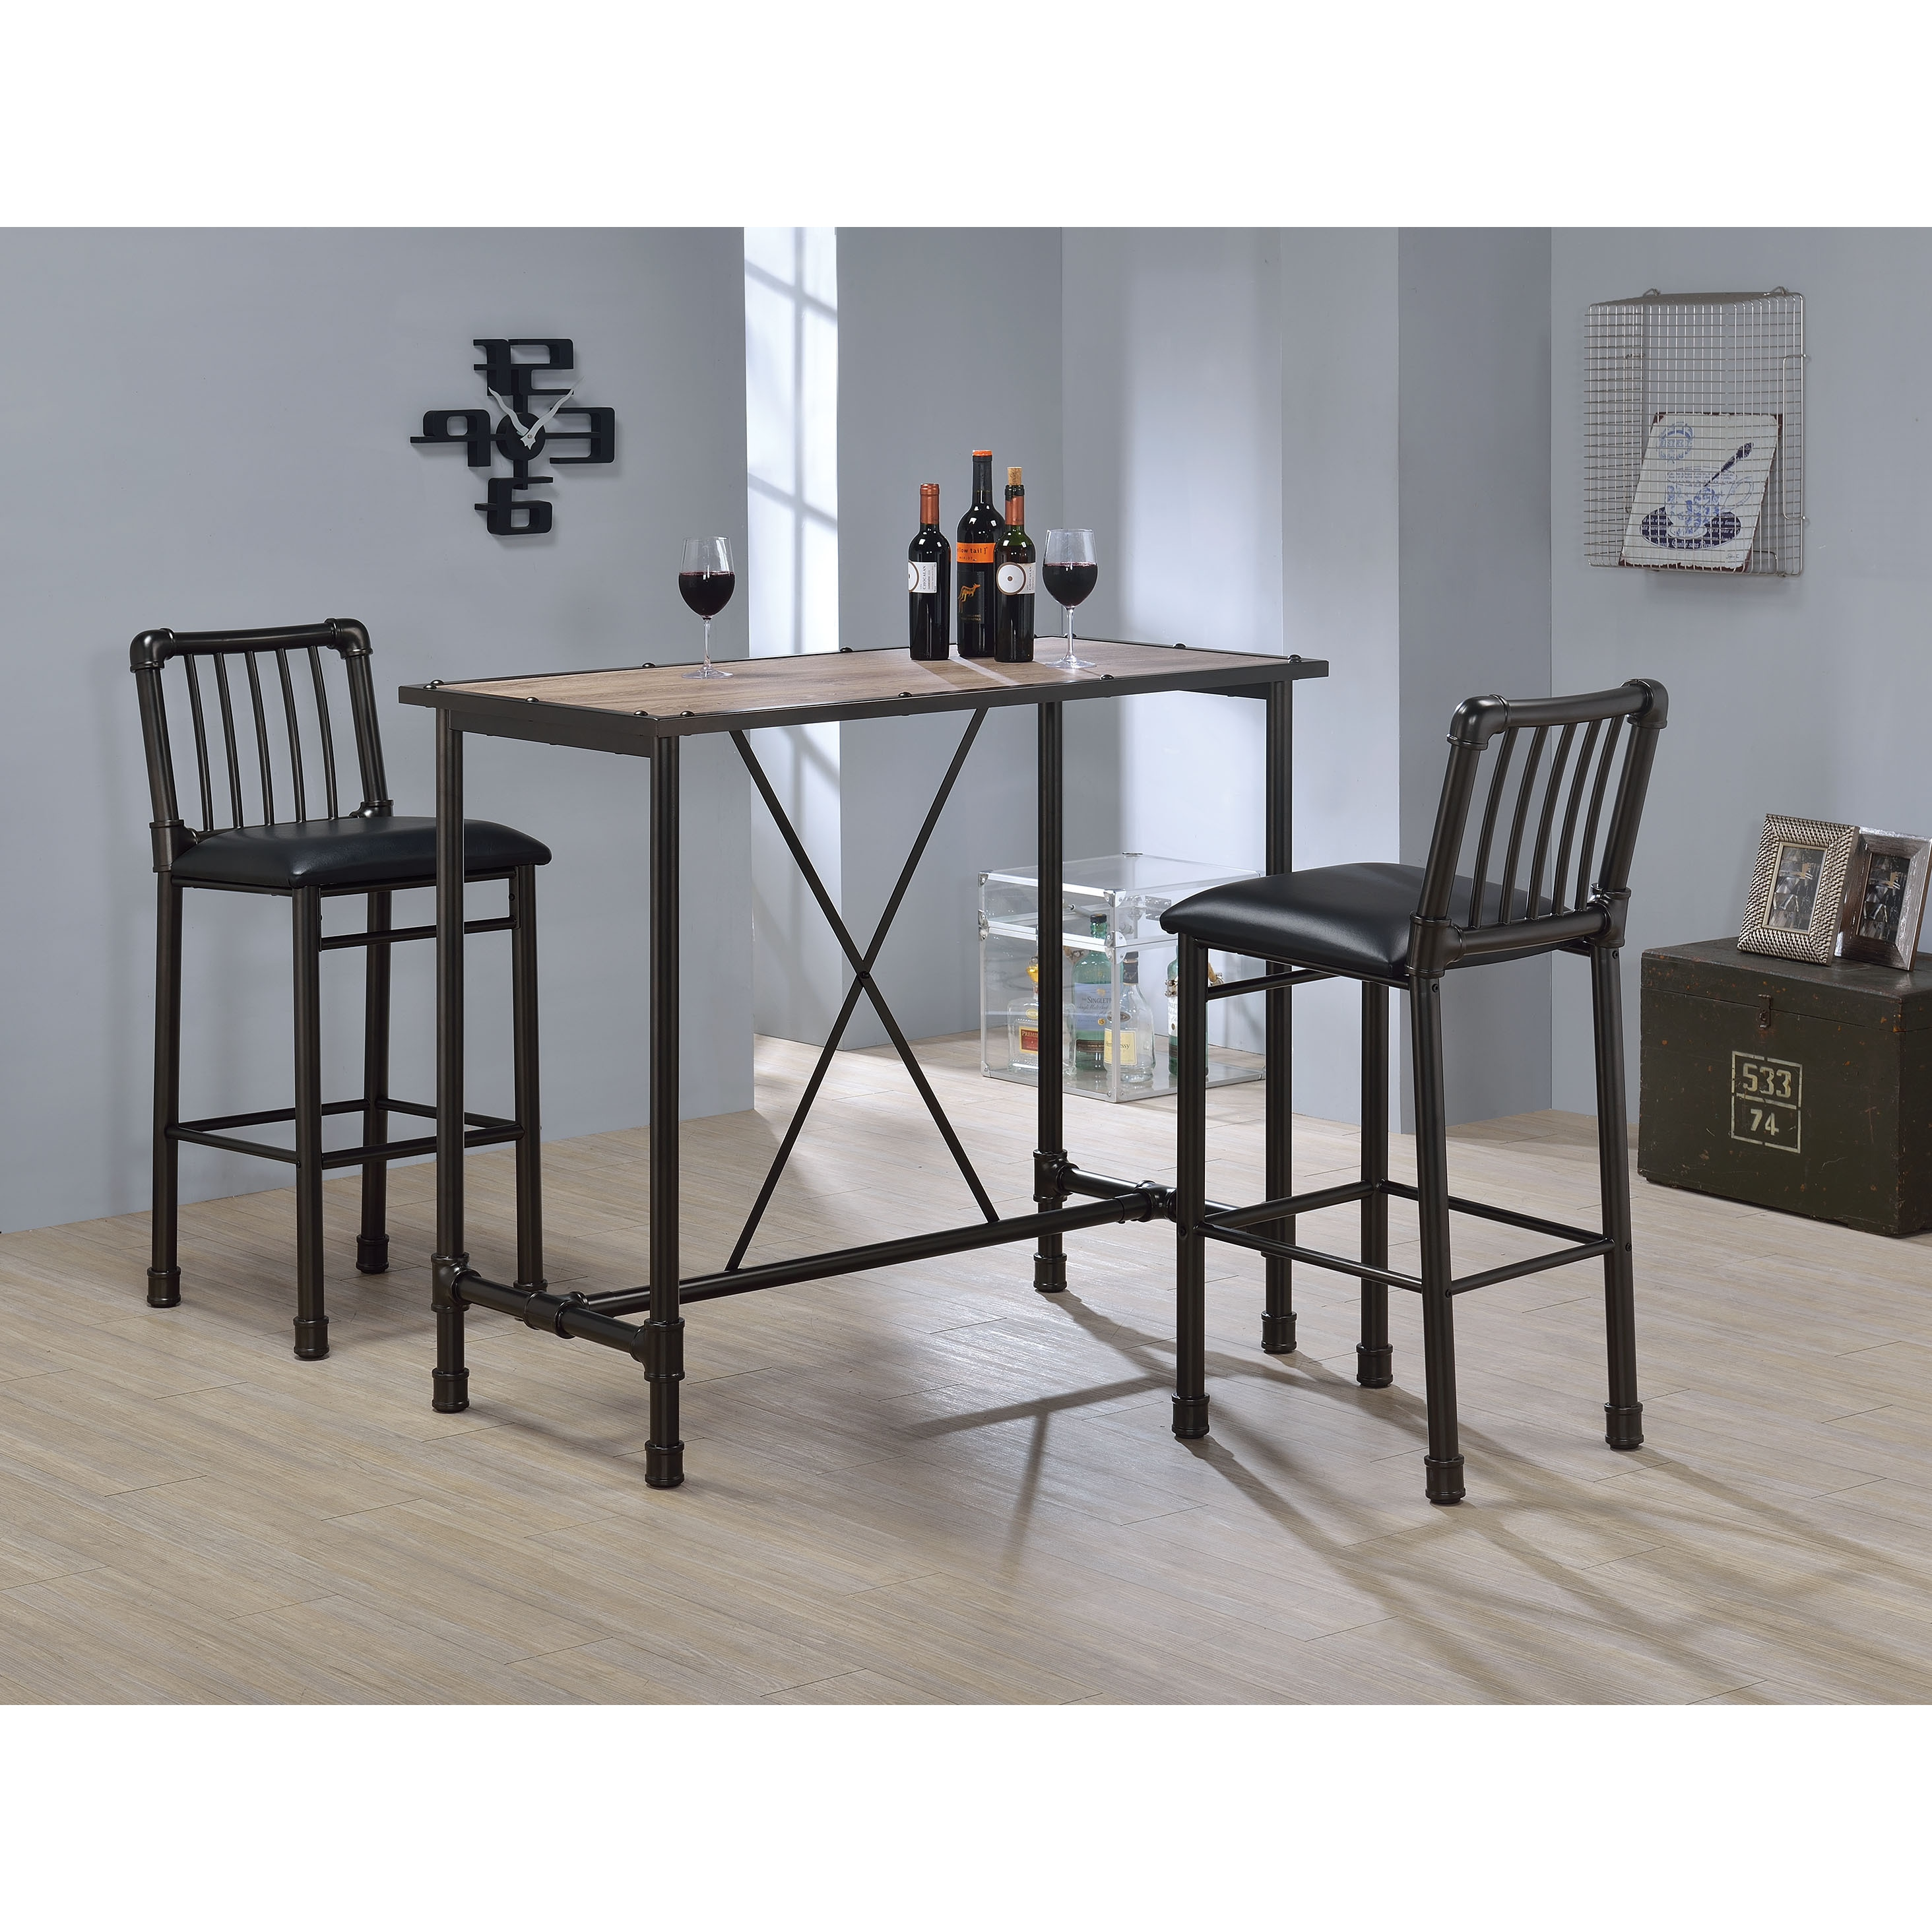 Carbon Loft Leona Rustic Oak And Metal Bar Table Free Shipping Today 20254231